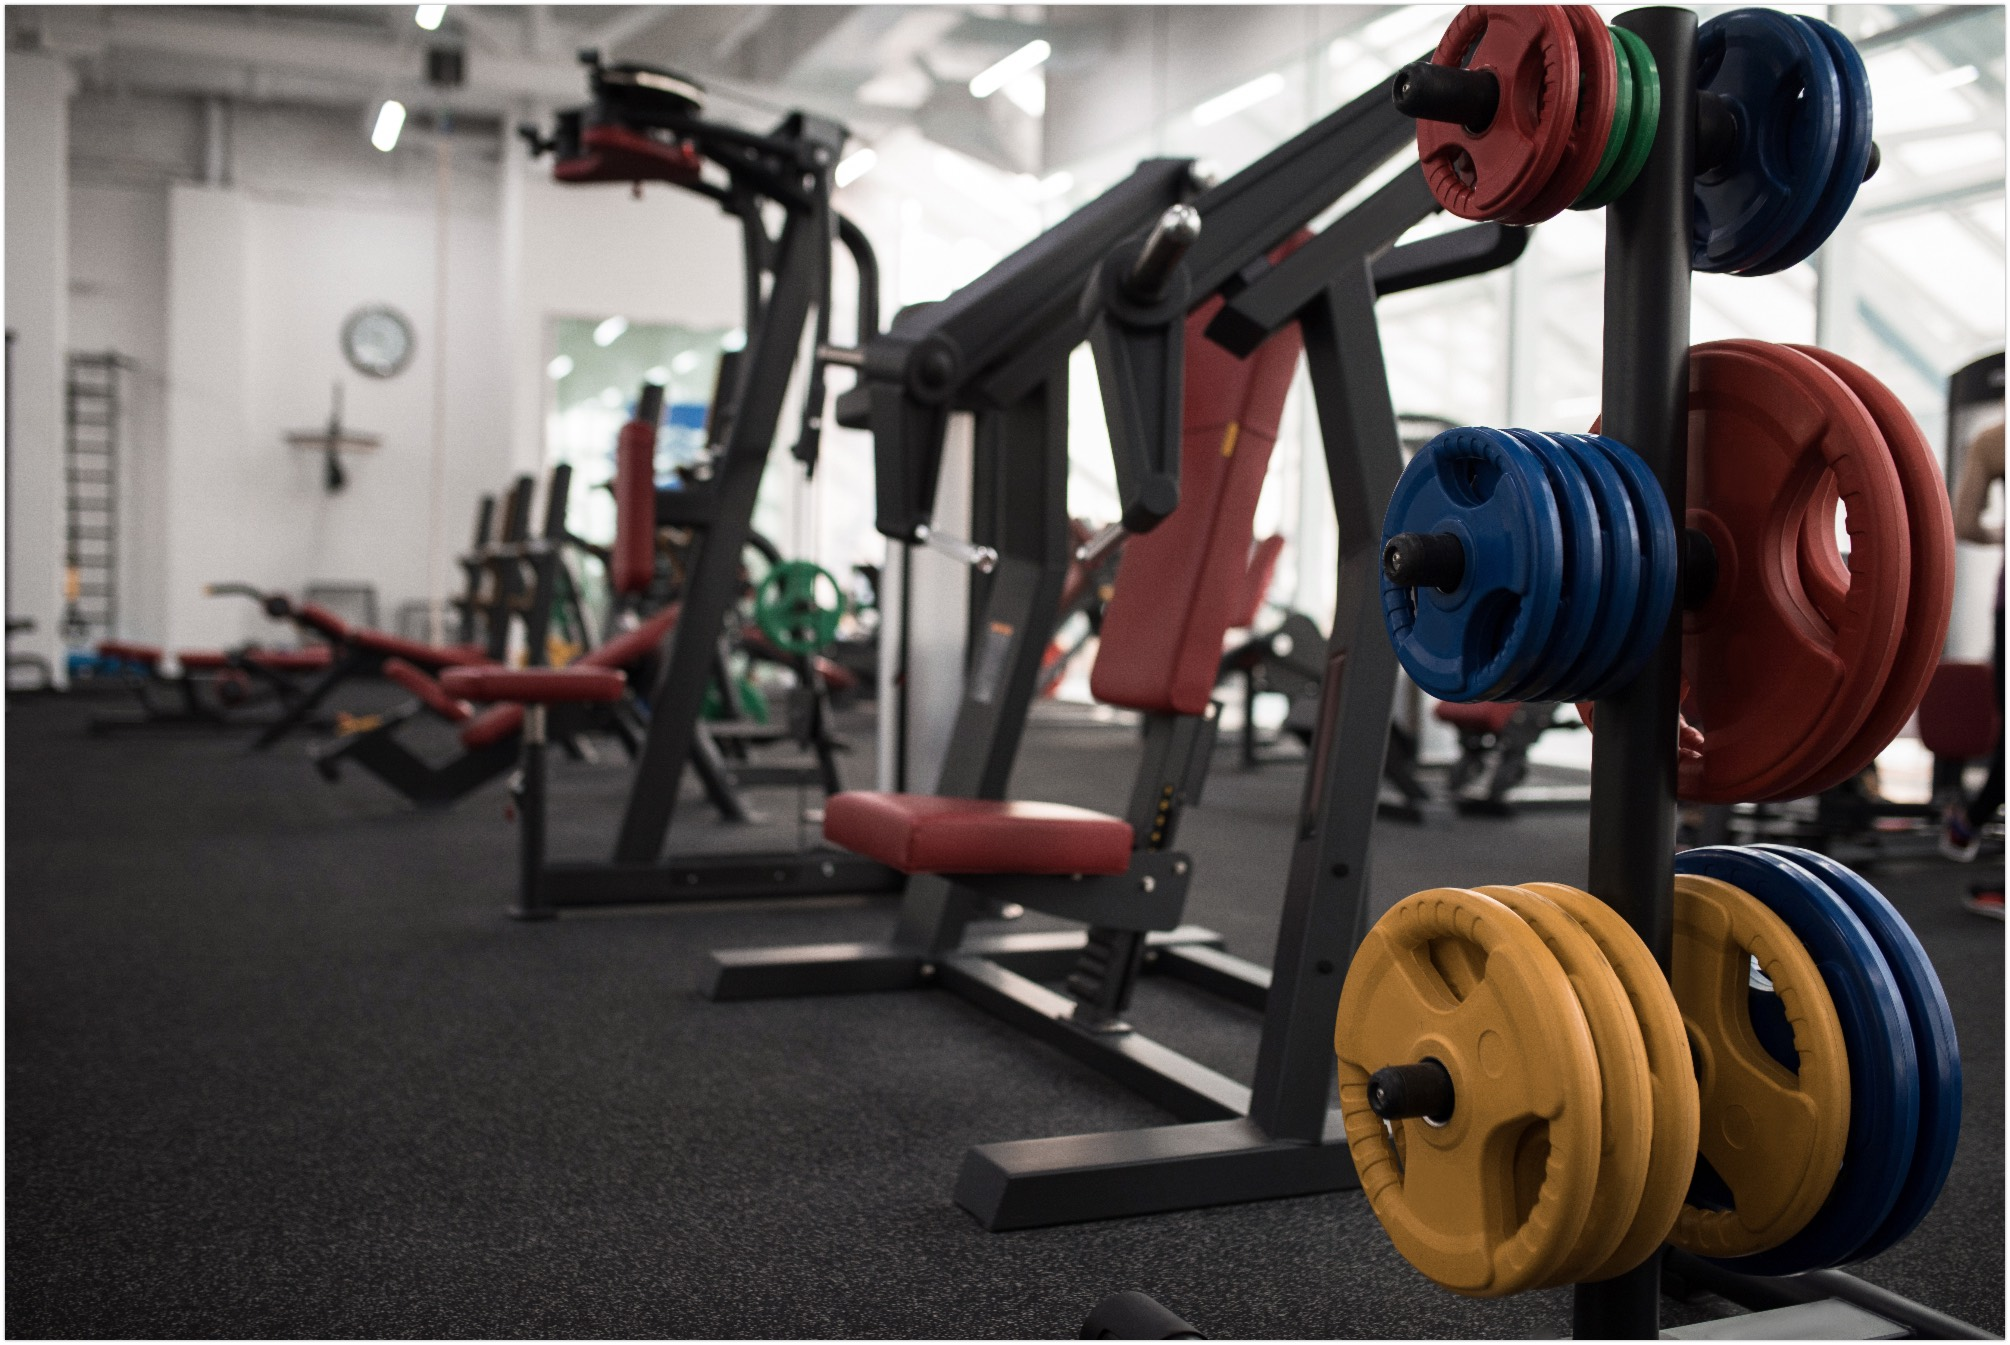 exercise machines inside the gym